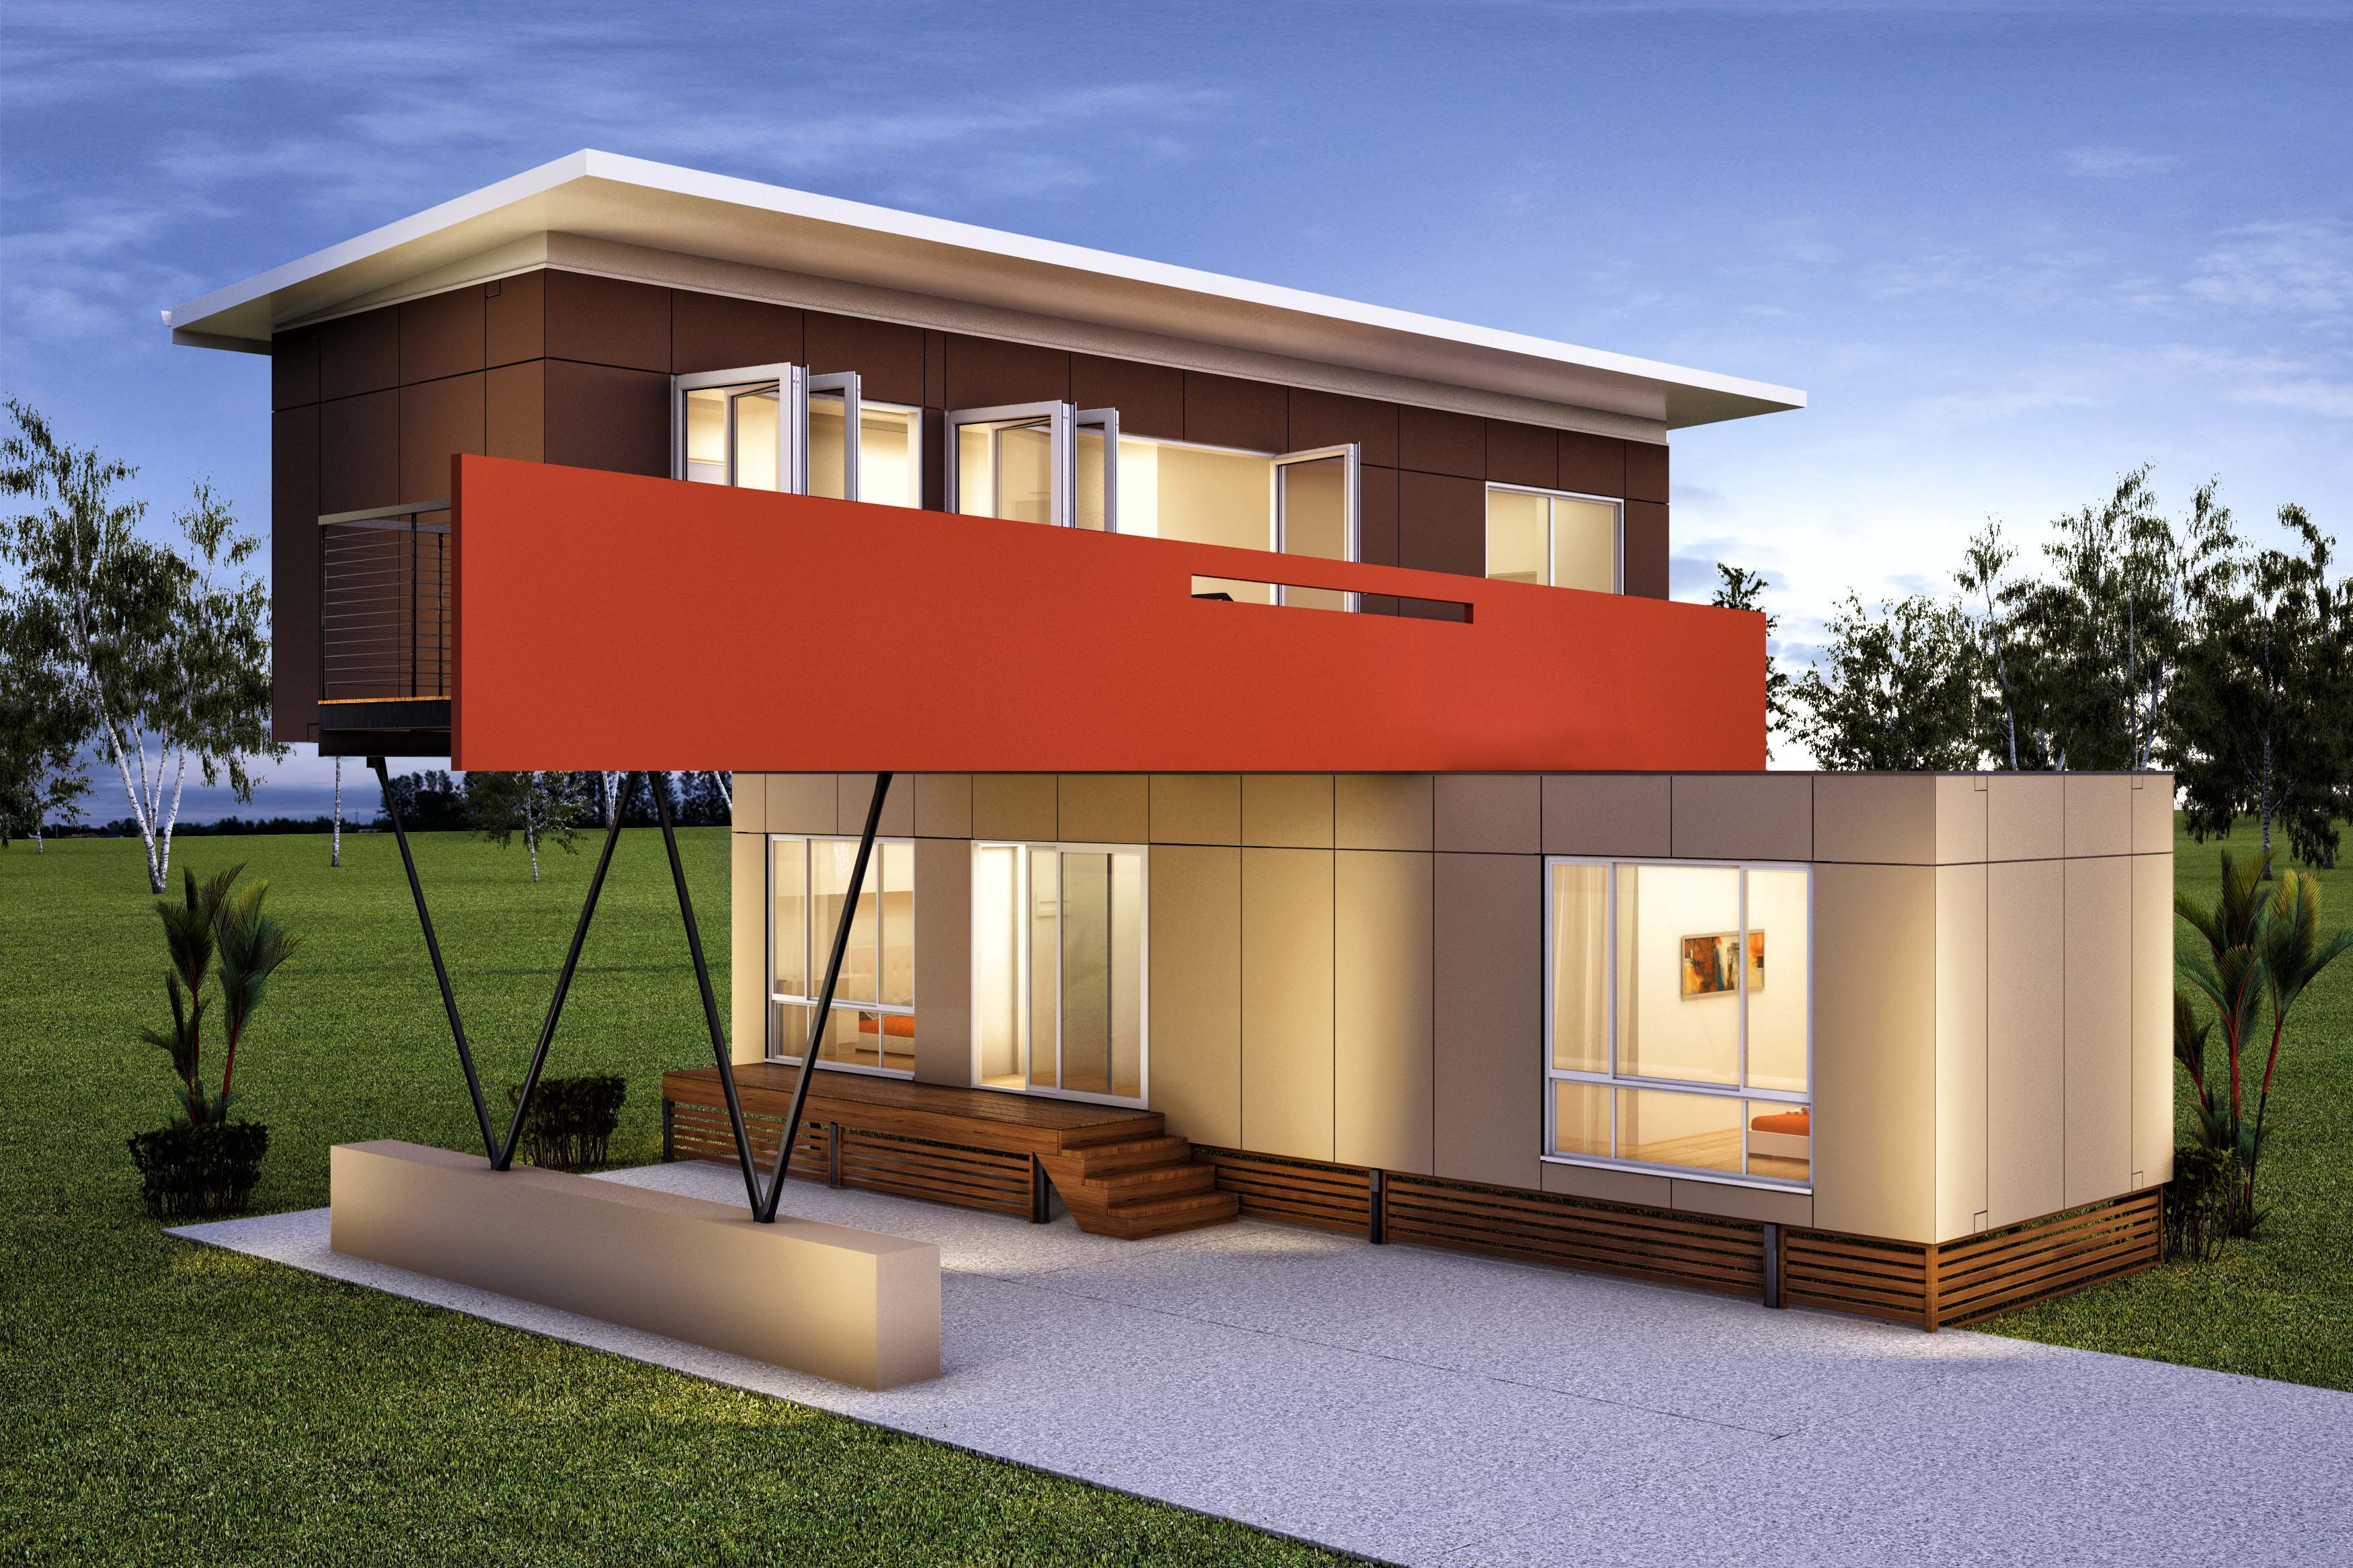 small house exterior designs small house plans lots lot house plans small lot house plans bedroom house plans